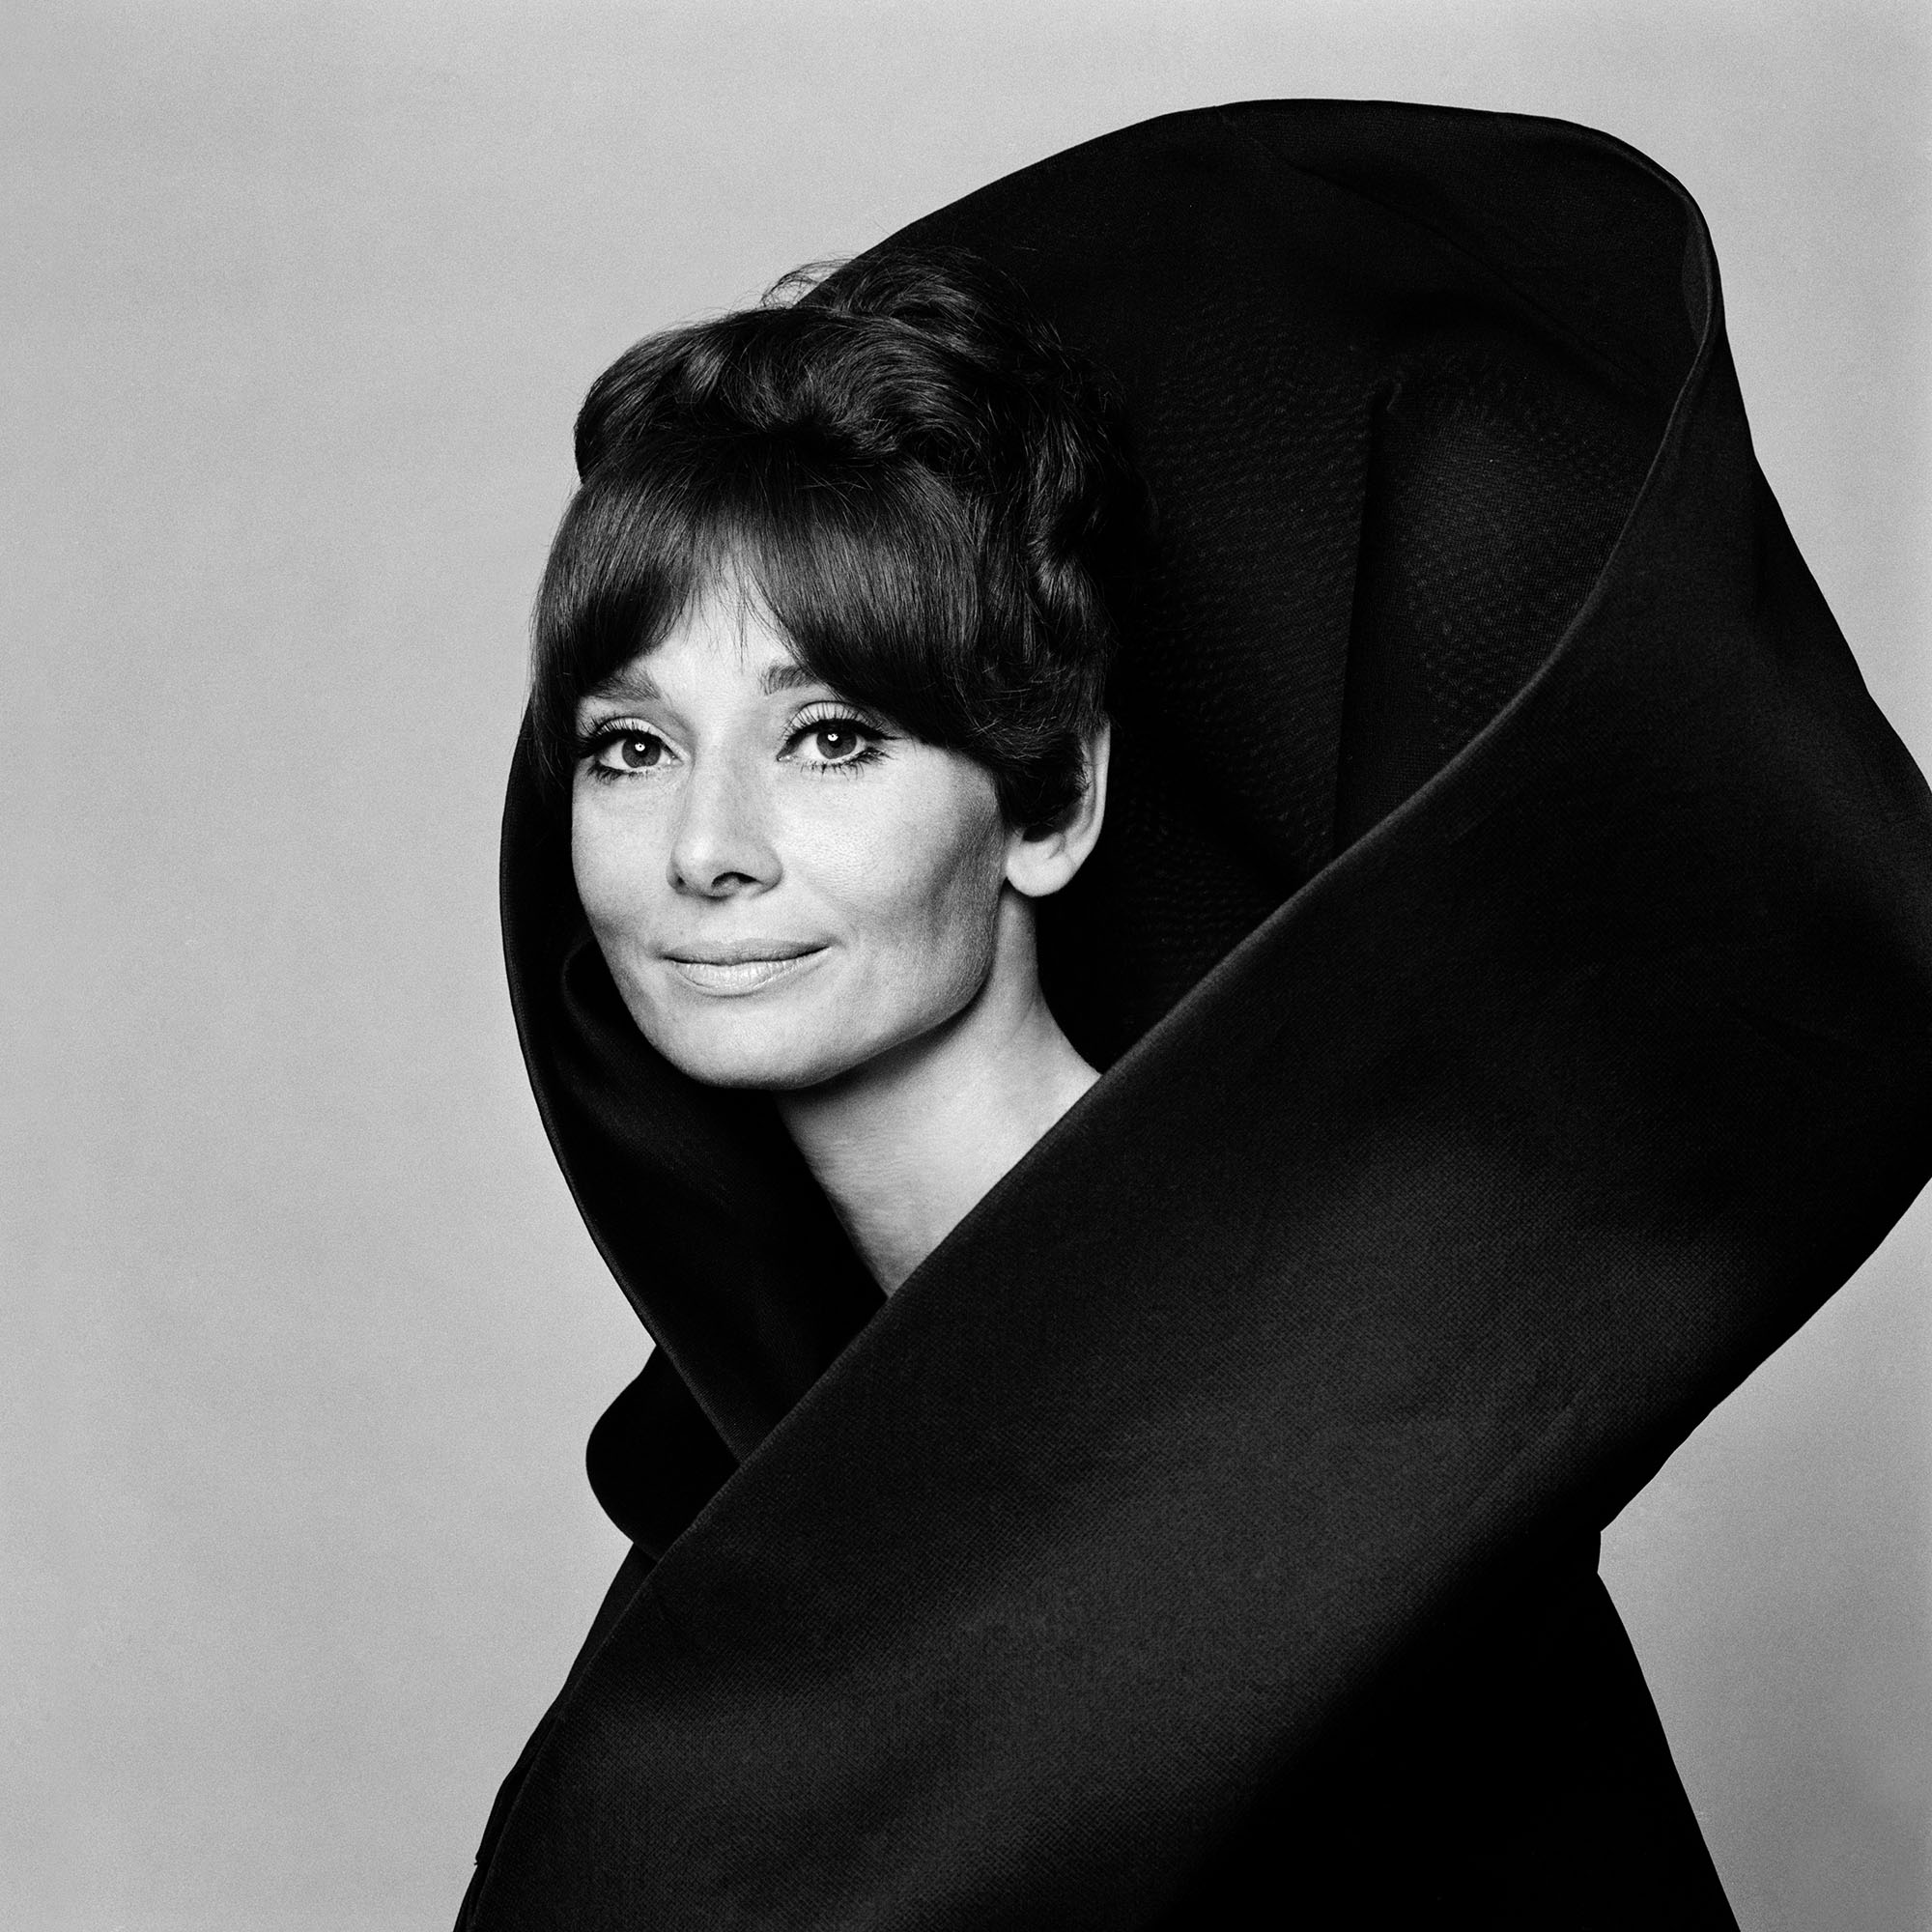 Gian Paolo Barbieri - Audrey Hepburn 1969 - Courtesy by 29 ARTS IN PROGRESS gallery